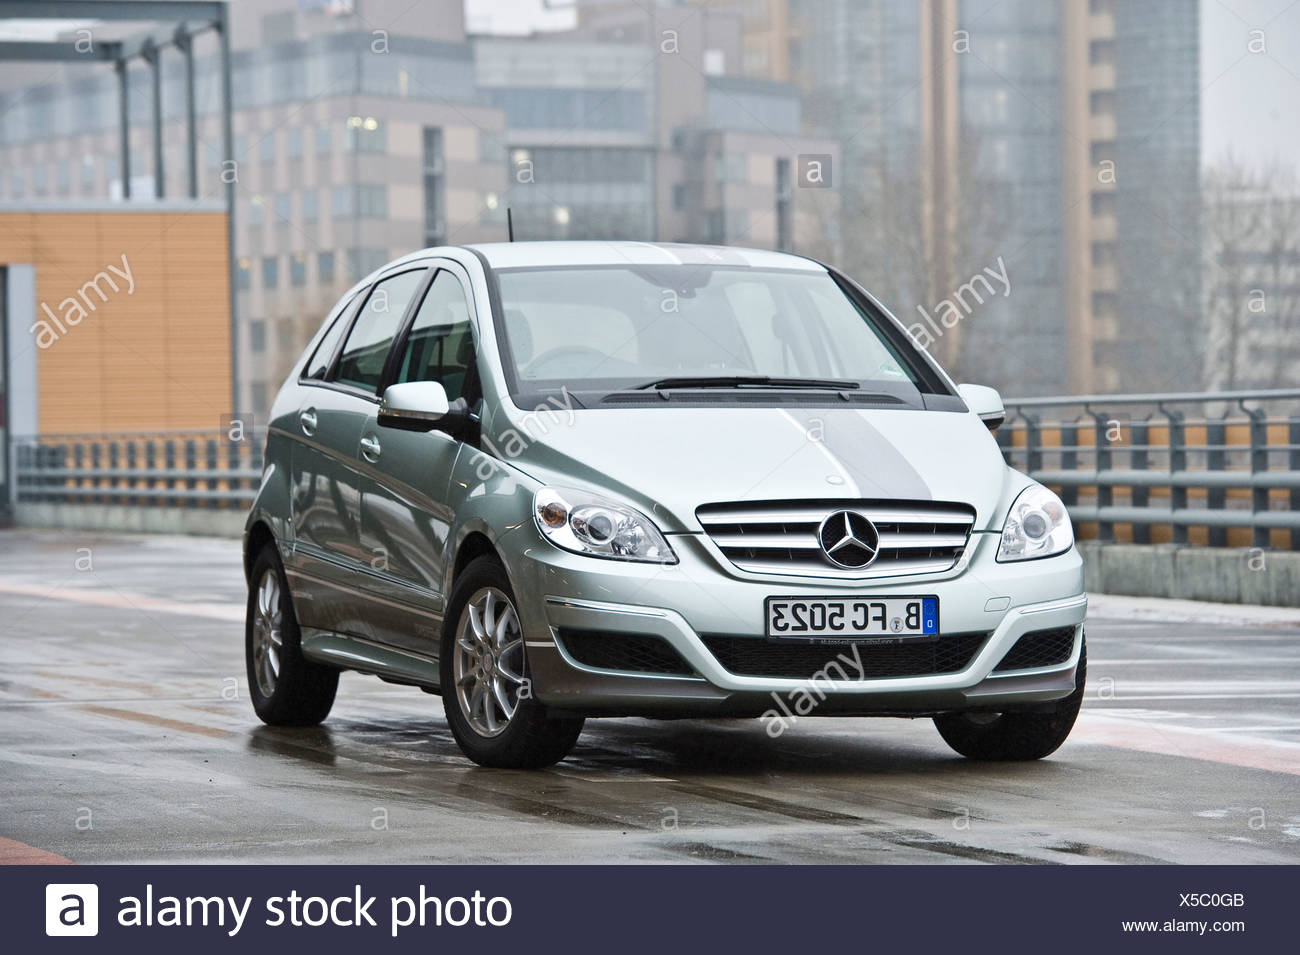 Hydrogen fuel cell vehicle, Mercedes B-class zero-emission, Berlin, Germany, Europe - Stock Image